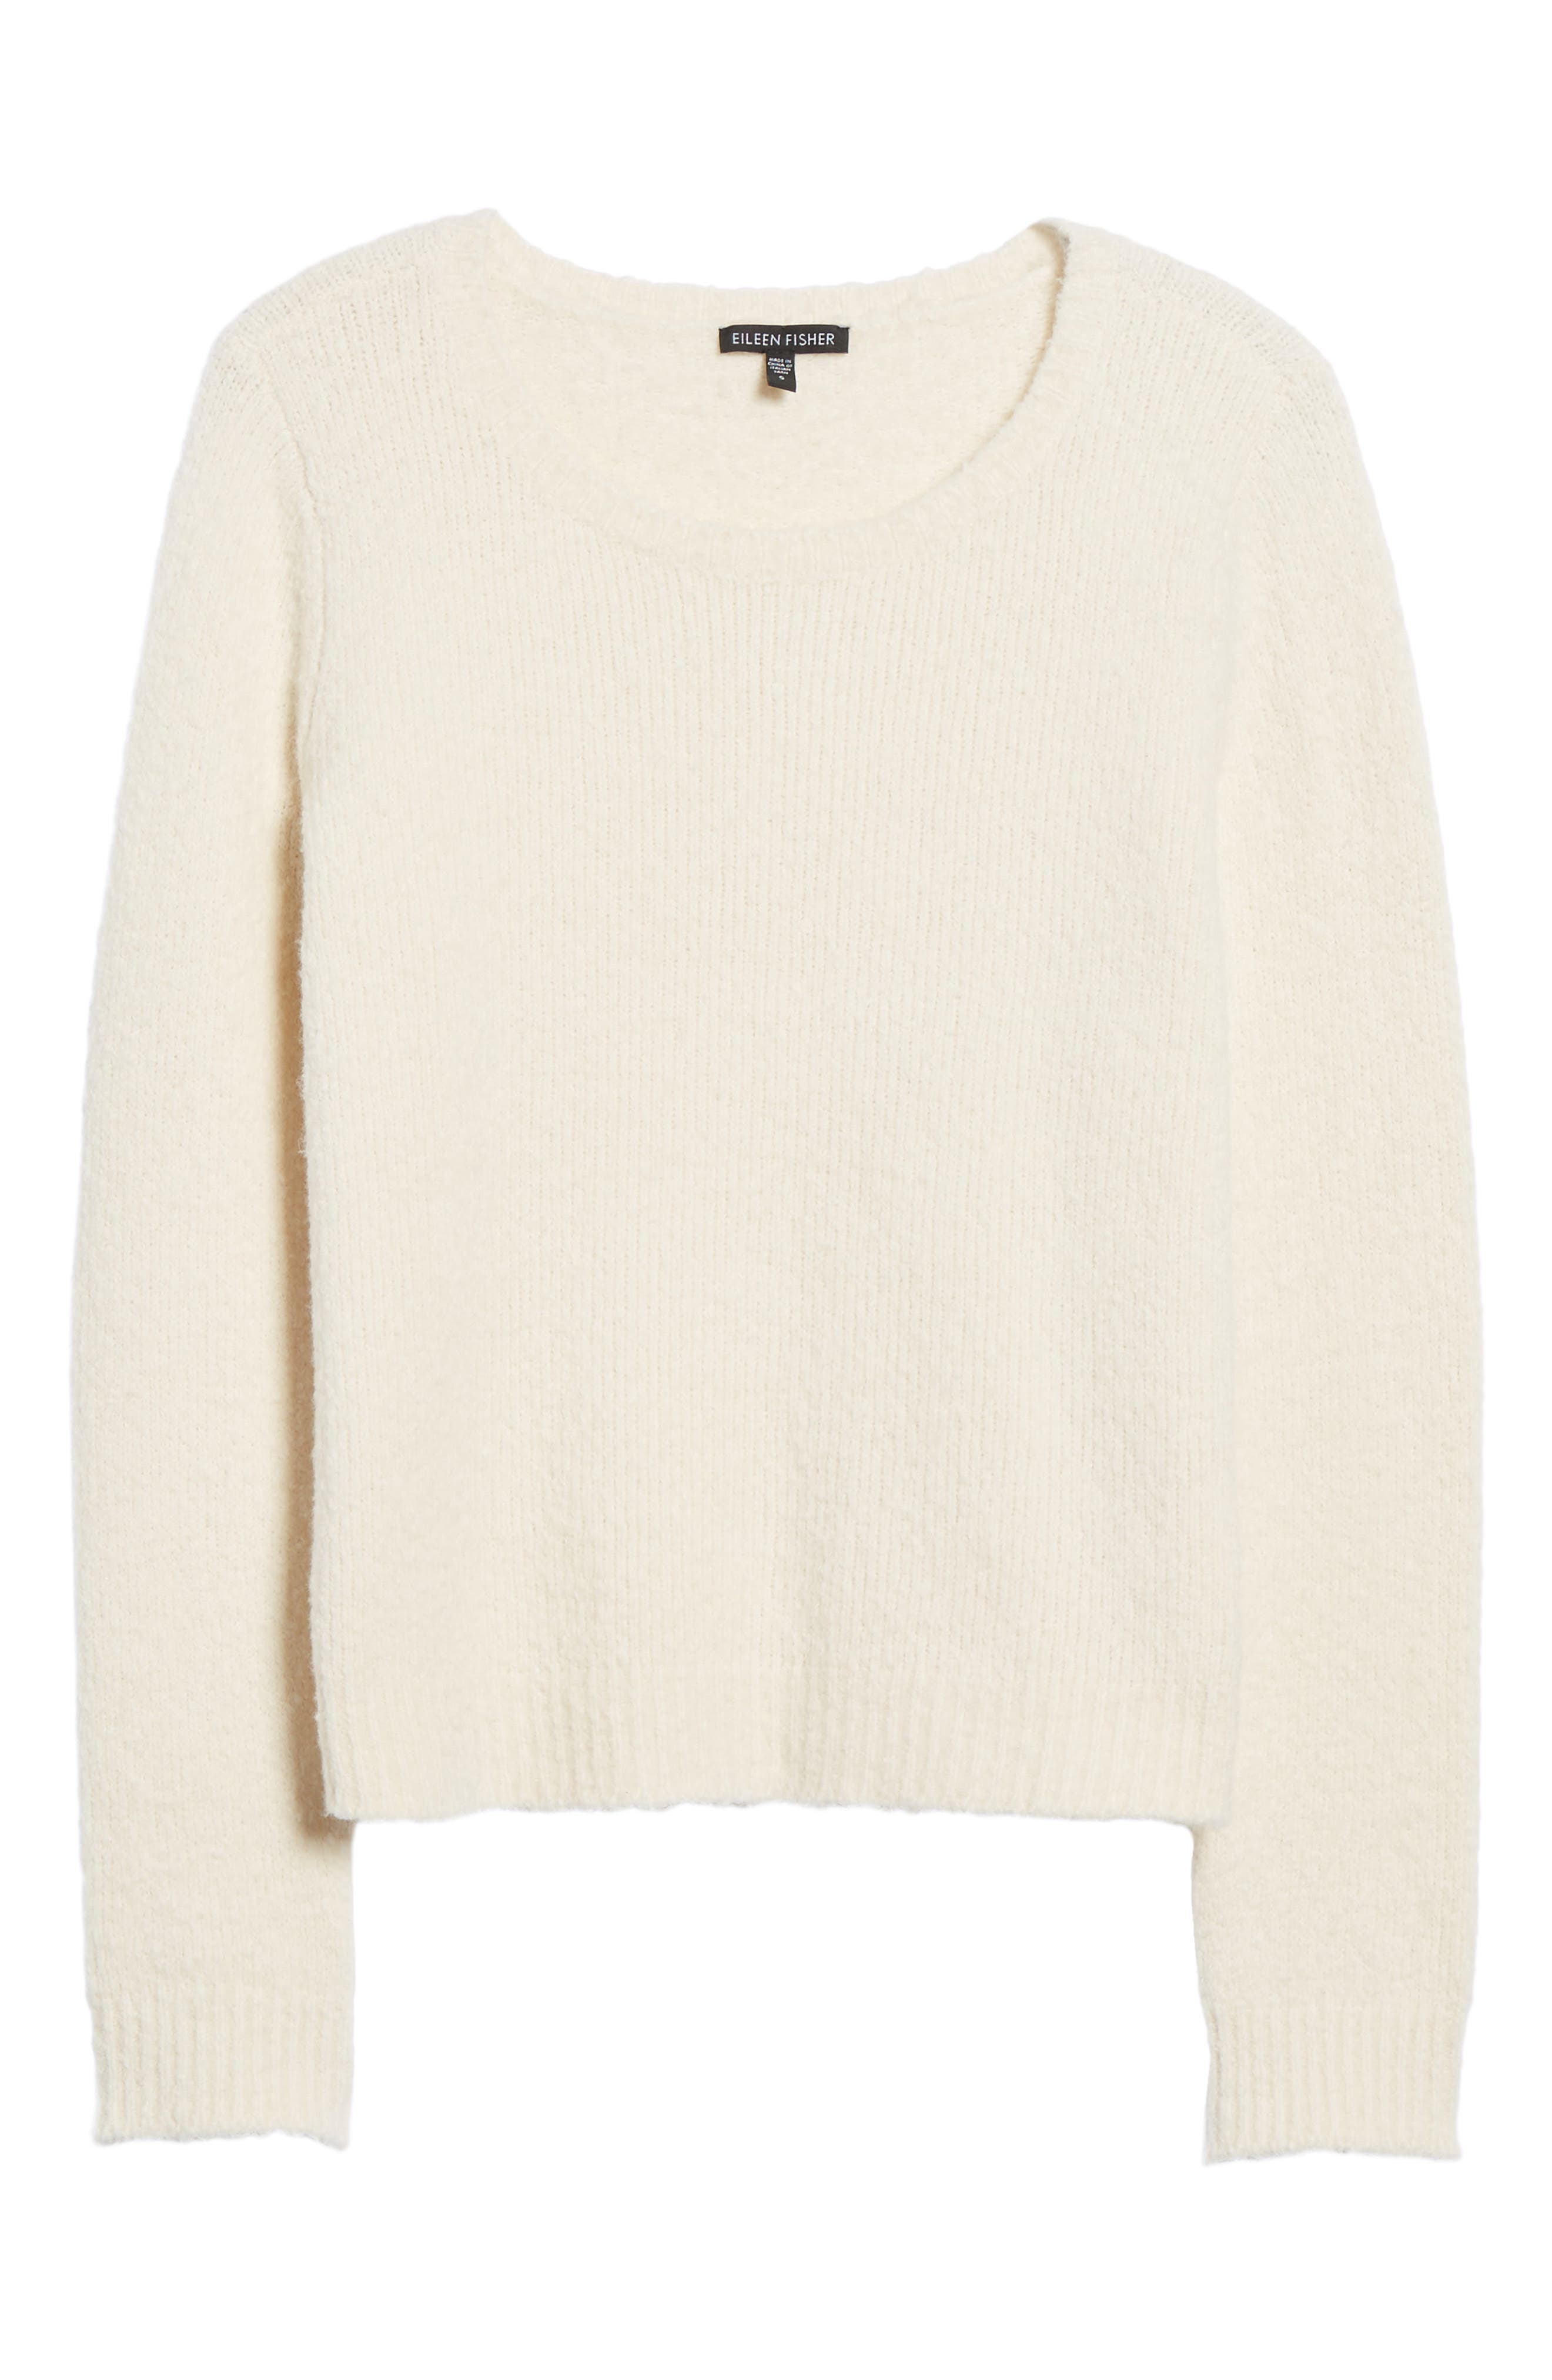 Organic Cotton Blend Sweater,                             Alternate thumbnail 6, color,                             103